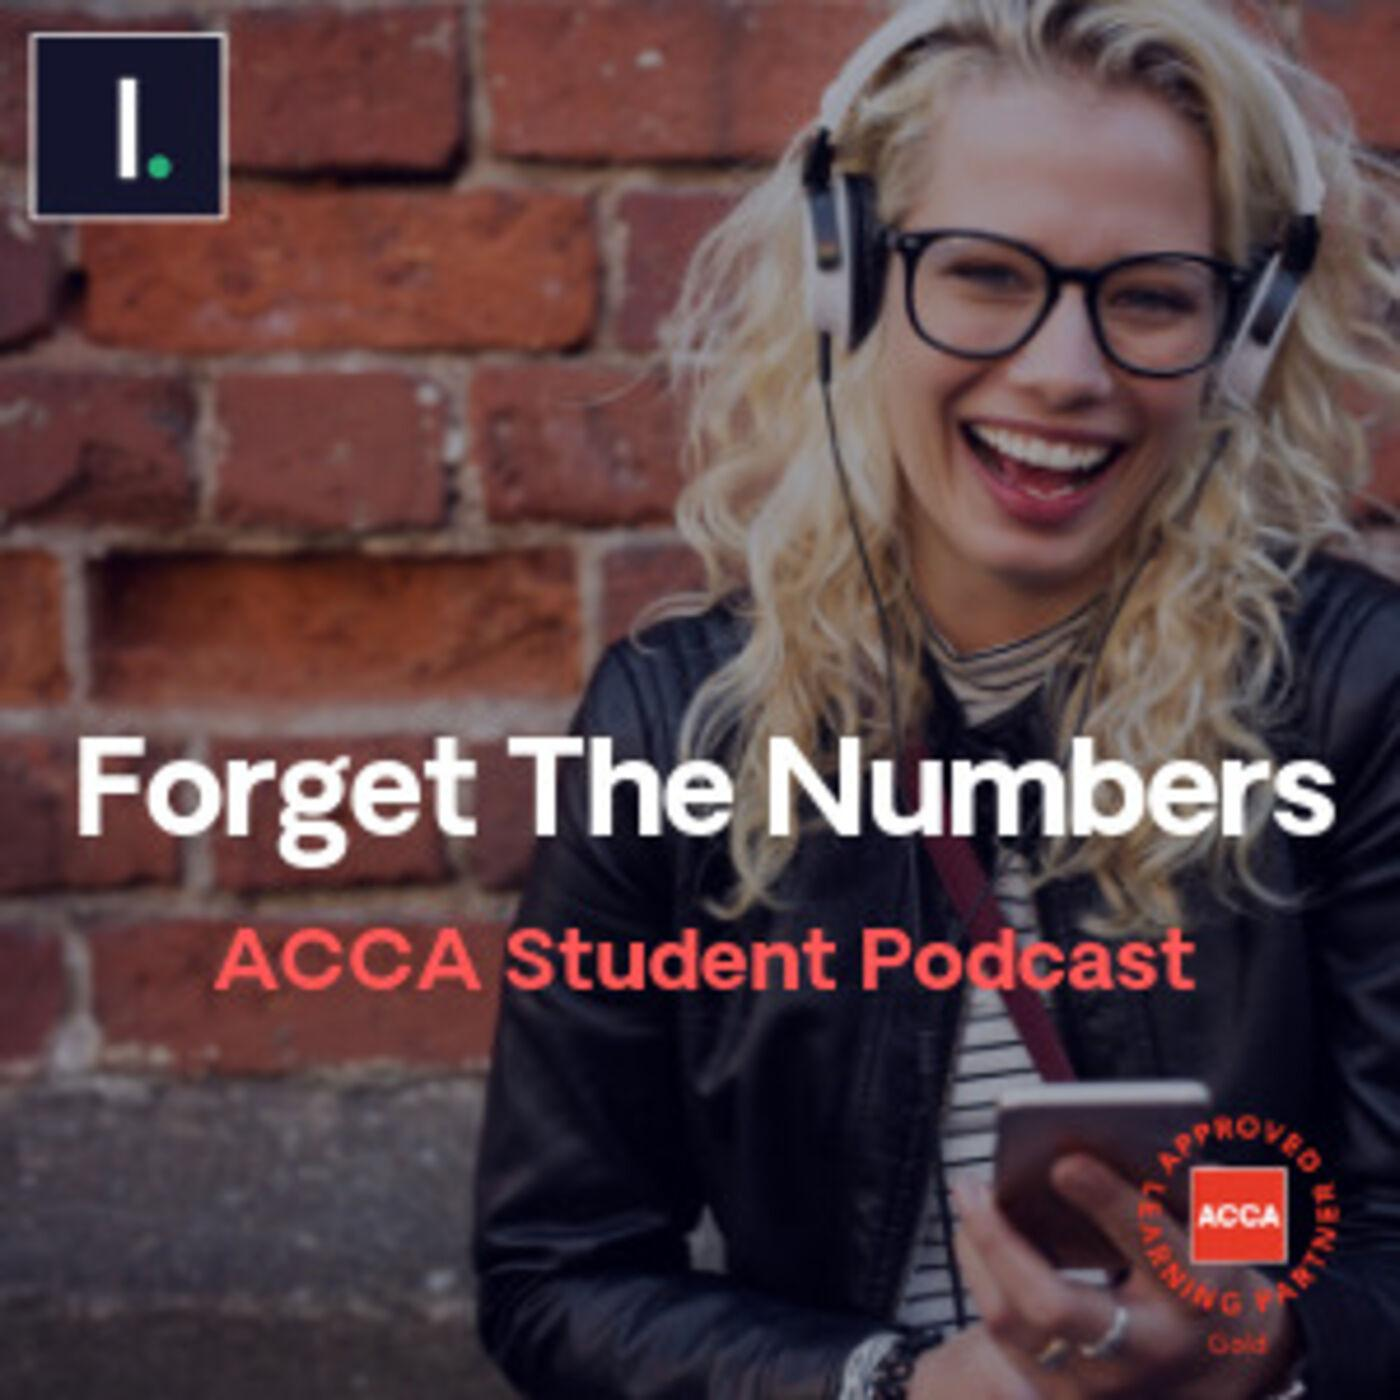 Forget the Numbers podcast